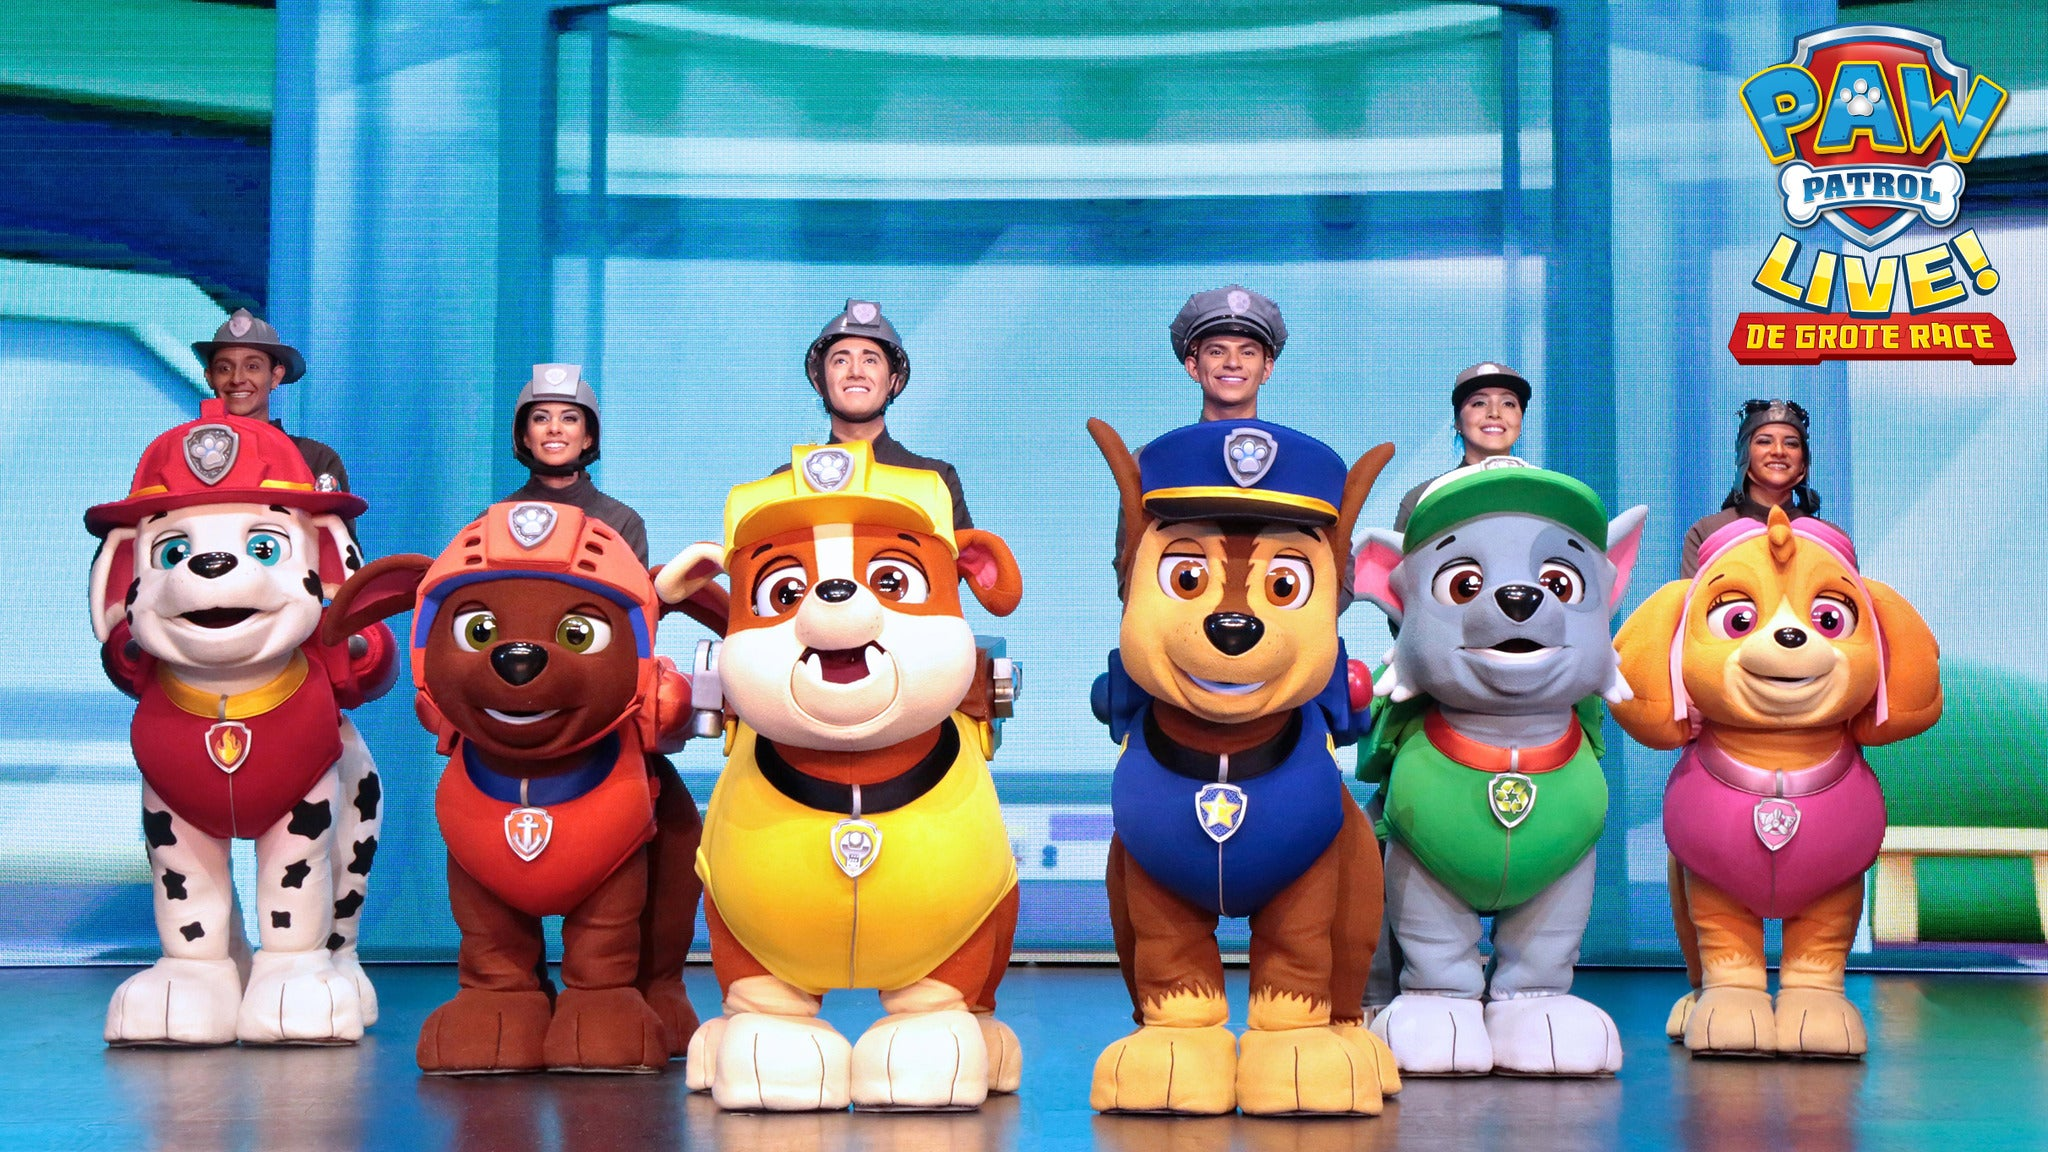 PAW Patrol Live! at Bismarck Event Center